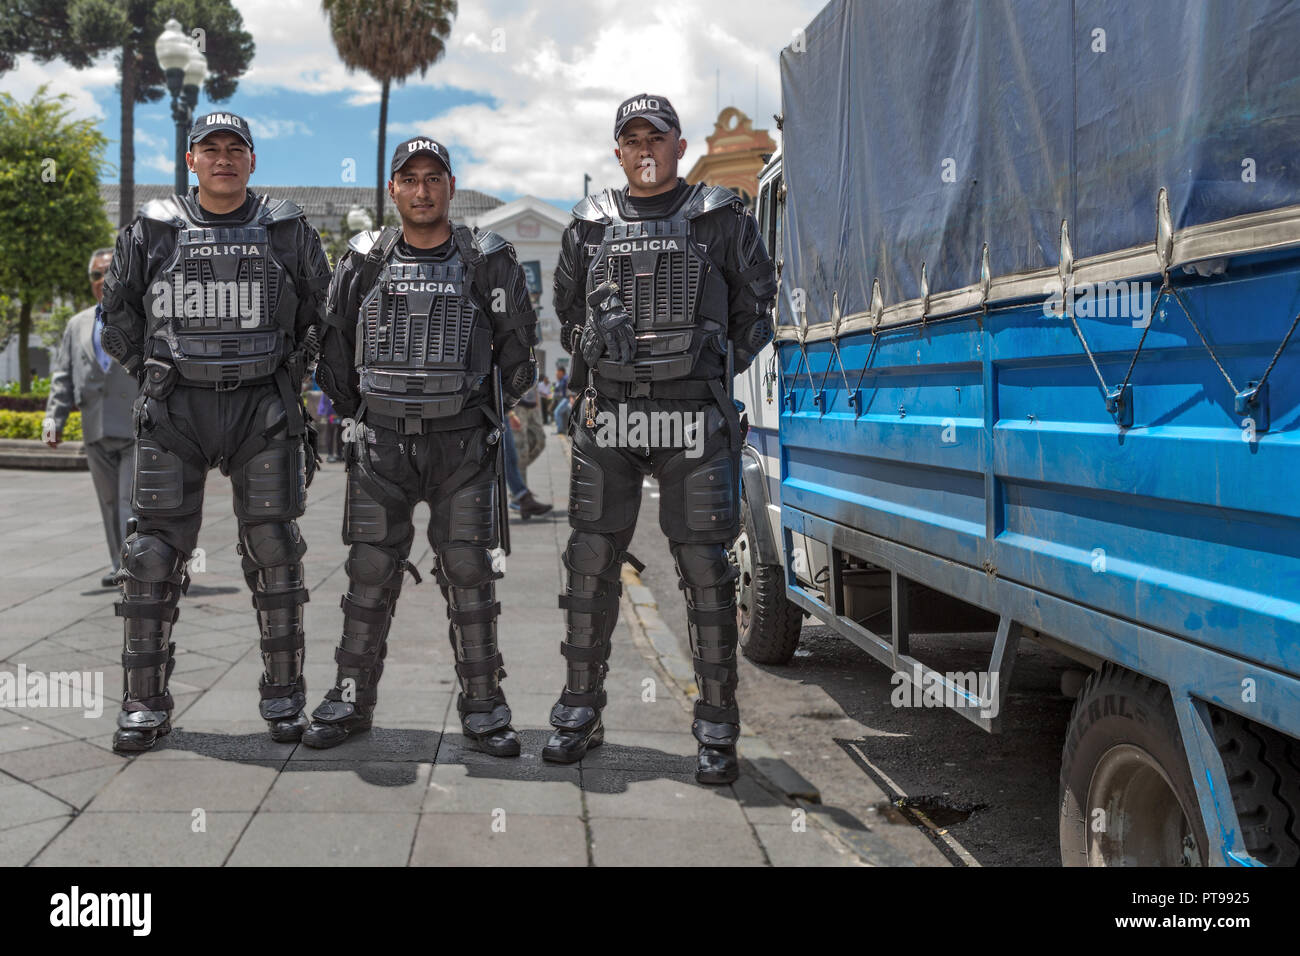 Police Officers Independance Square UNESCO World heritage  Centre Quito Ecuador - Stock Image